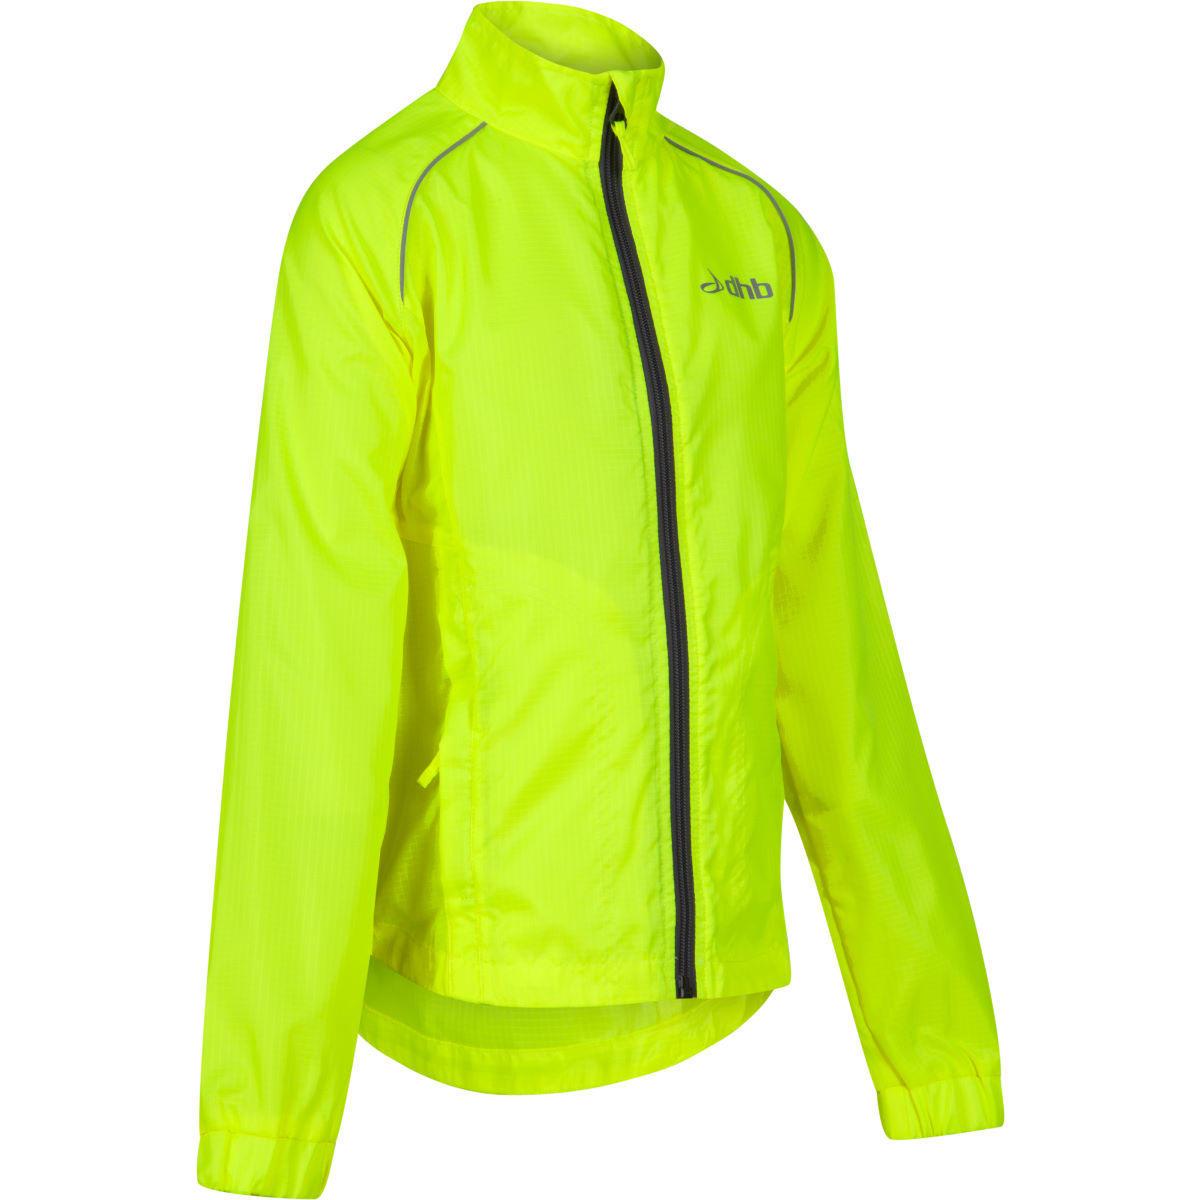 Veste Enfant dhb Hi Viz - 10-12 Years Fluro Yellow Coupe-vents vélo